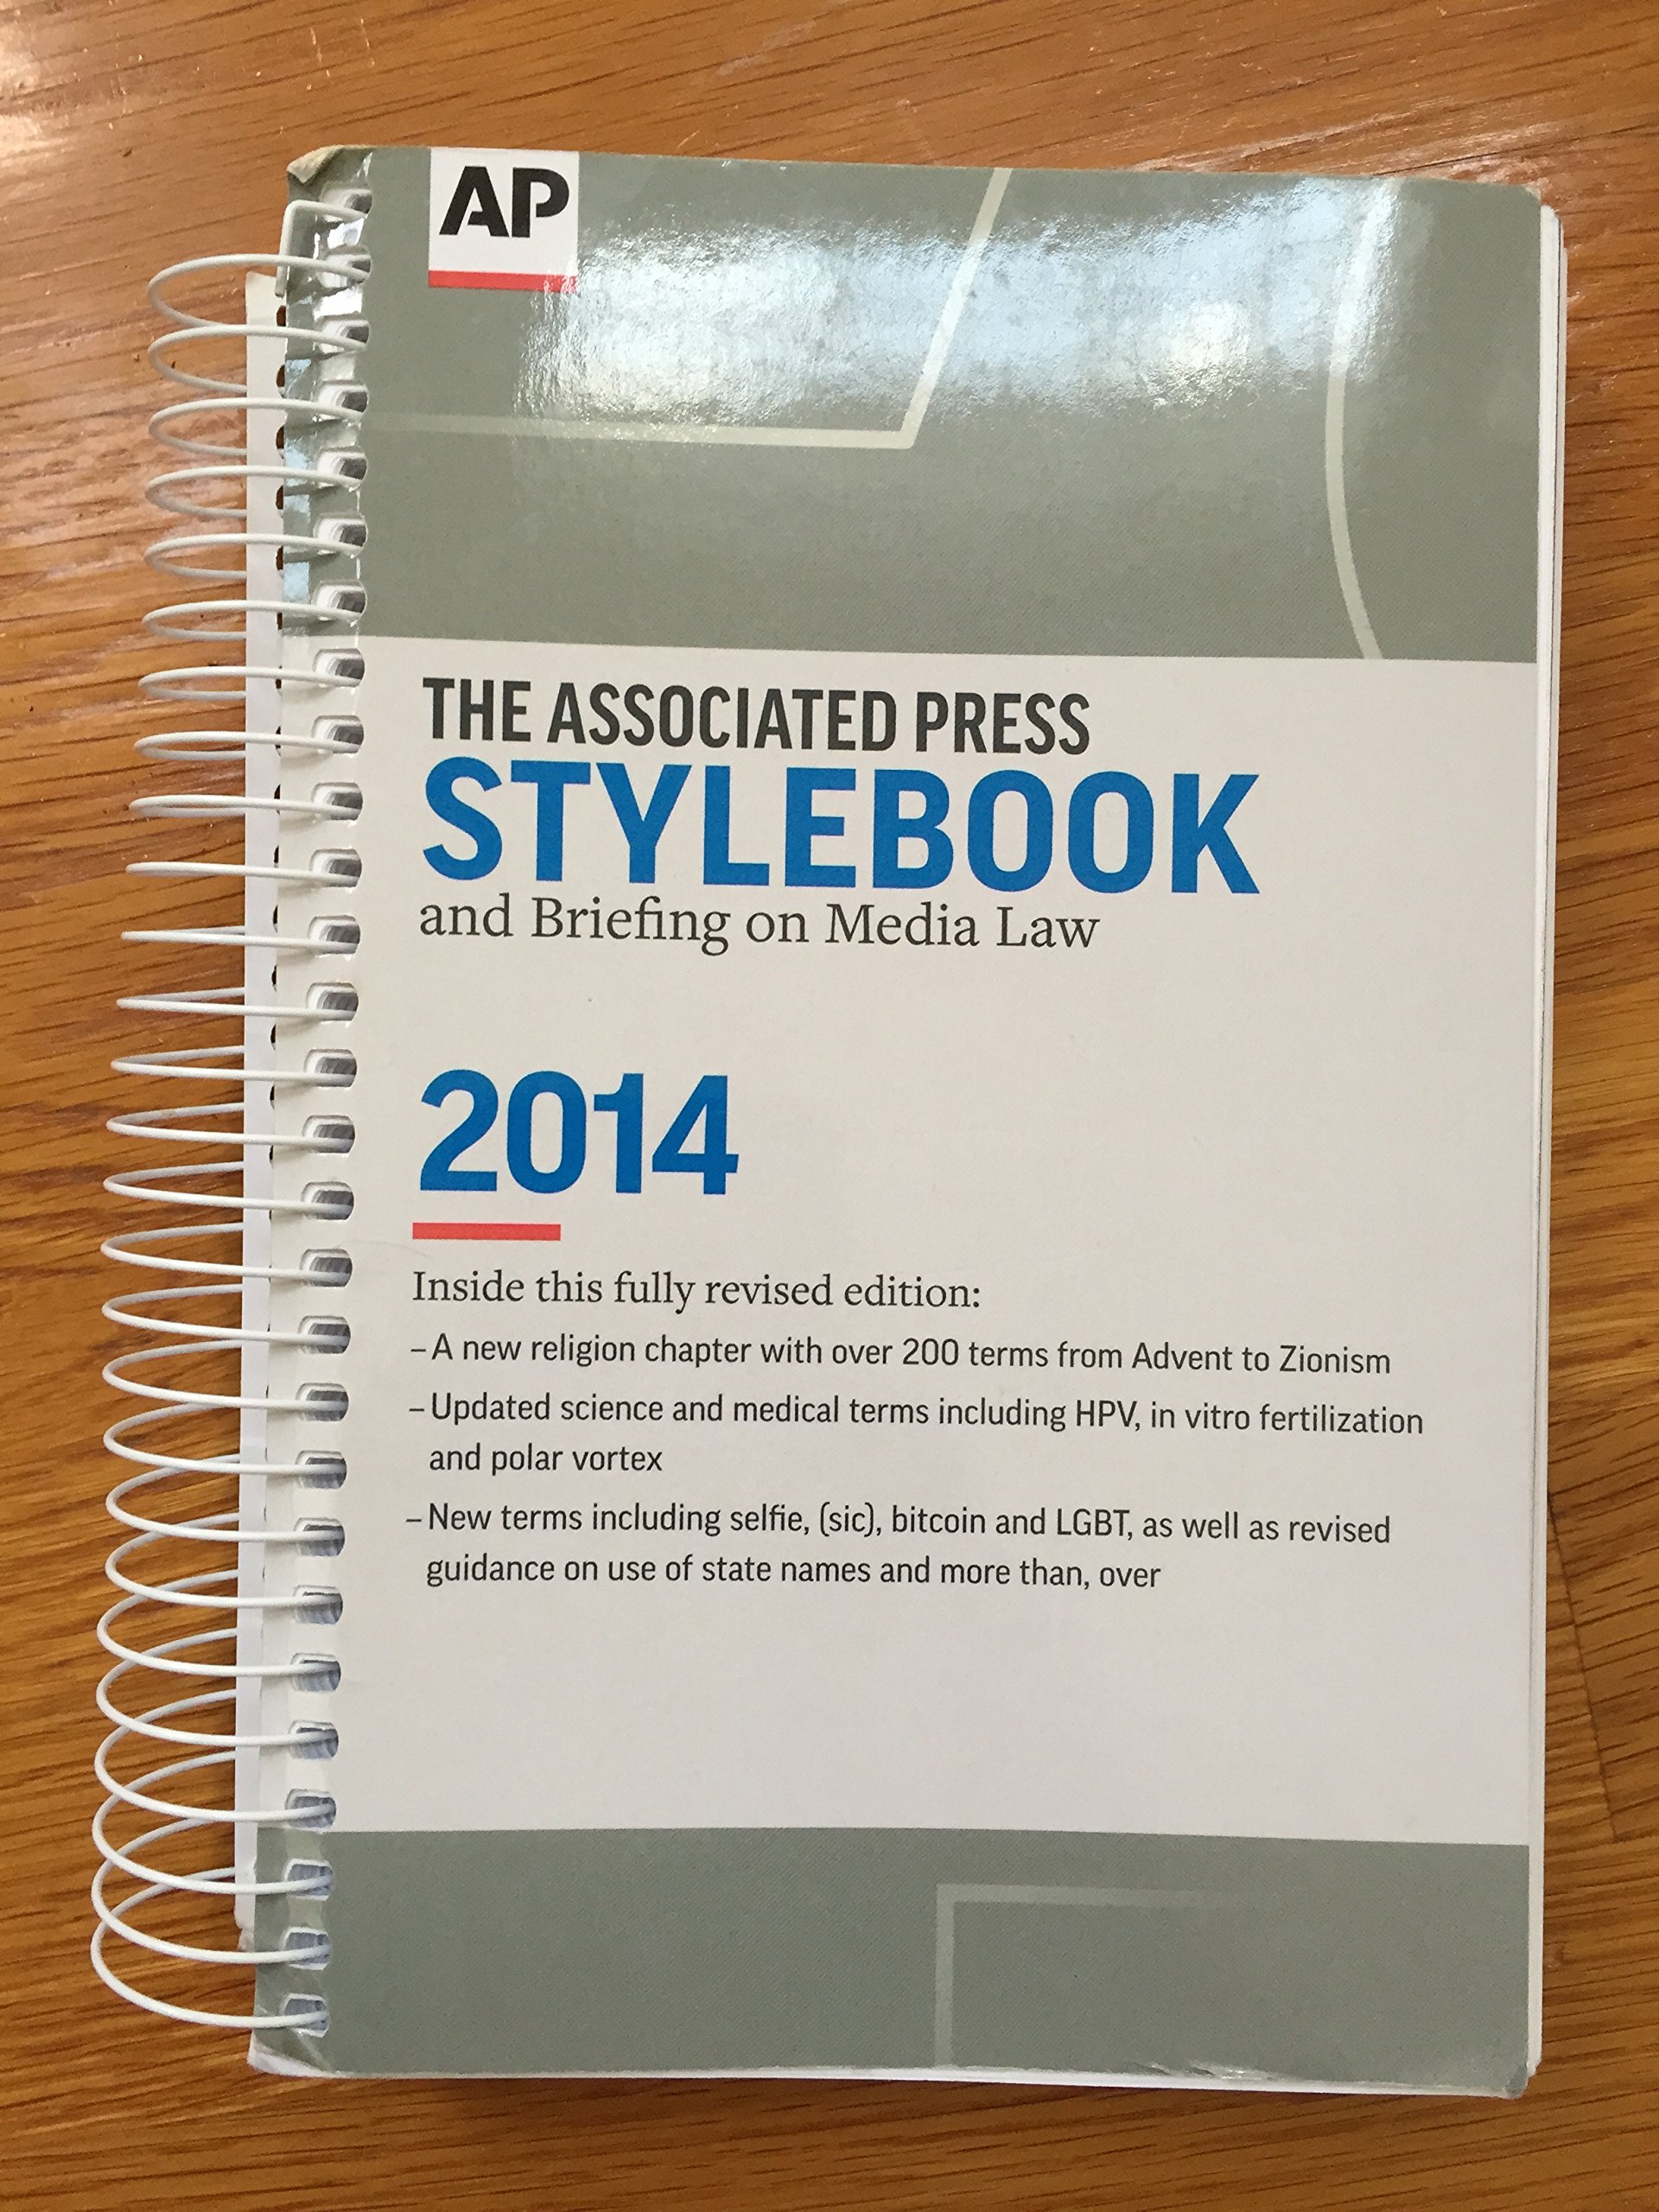 Associated press stylebook 2014 darrell christian paula froke associated press stylebook 2014 darrell christian paula froke sally jacobsen david minthorn 9780917360589 amazon books fandeluxe Choice Image